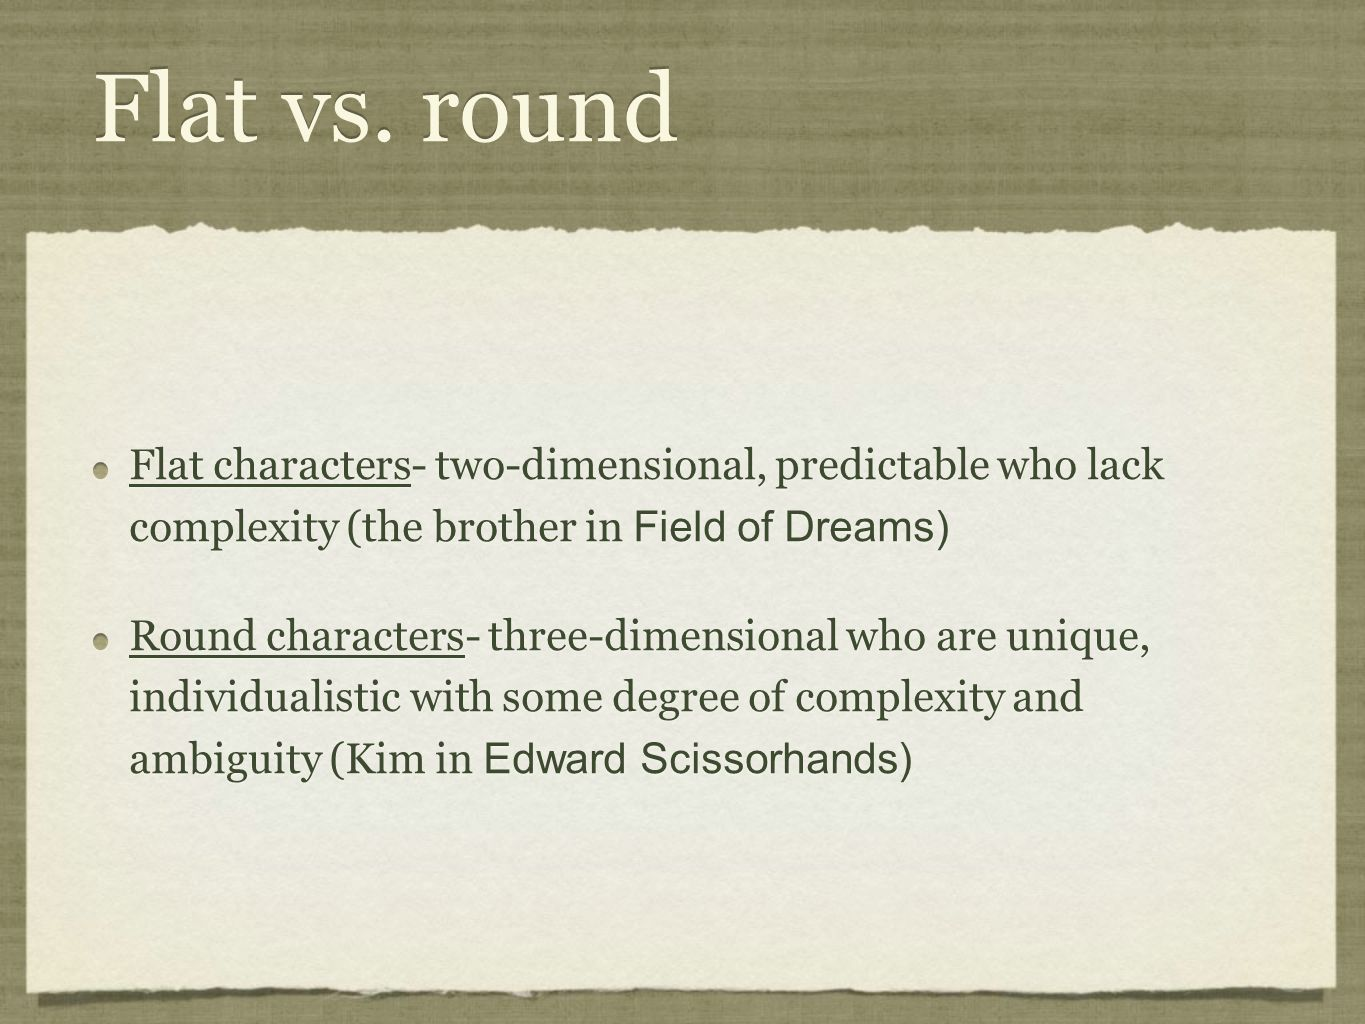 Flat vs. round Flat characters- two-dimensional, predictable who lack complexity (the brother in Field of Dreams)